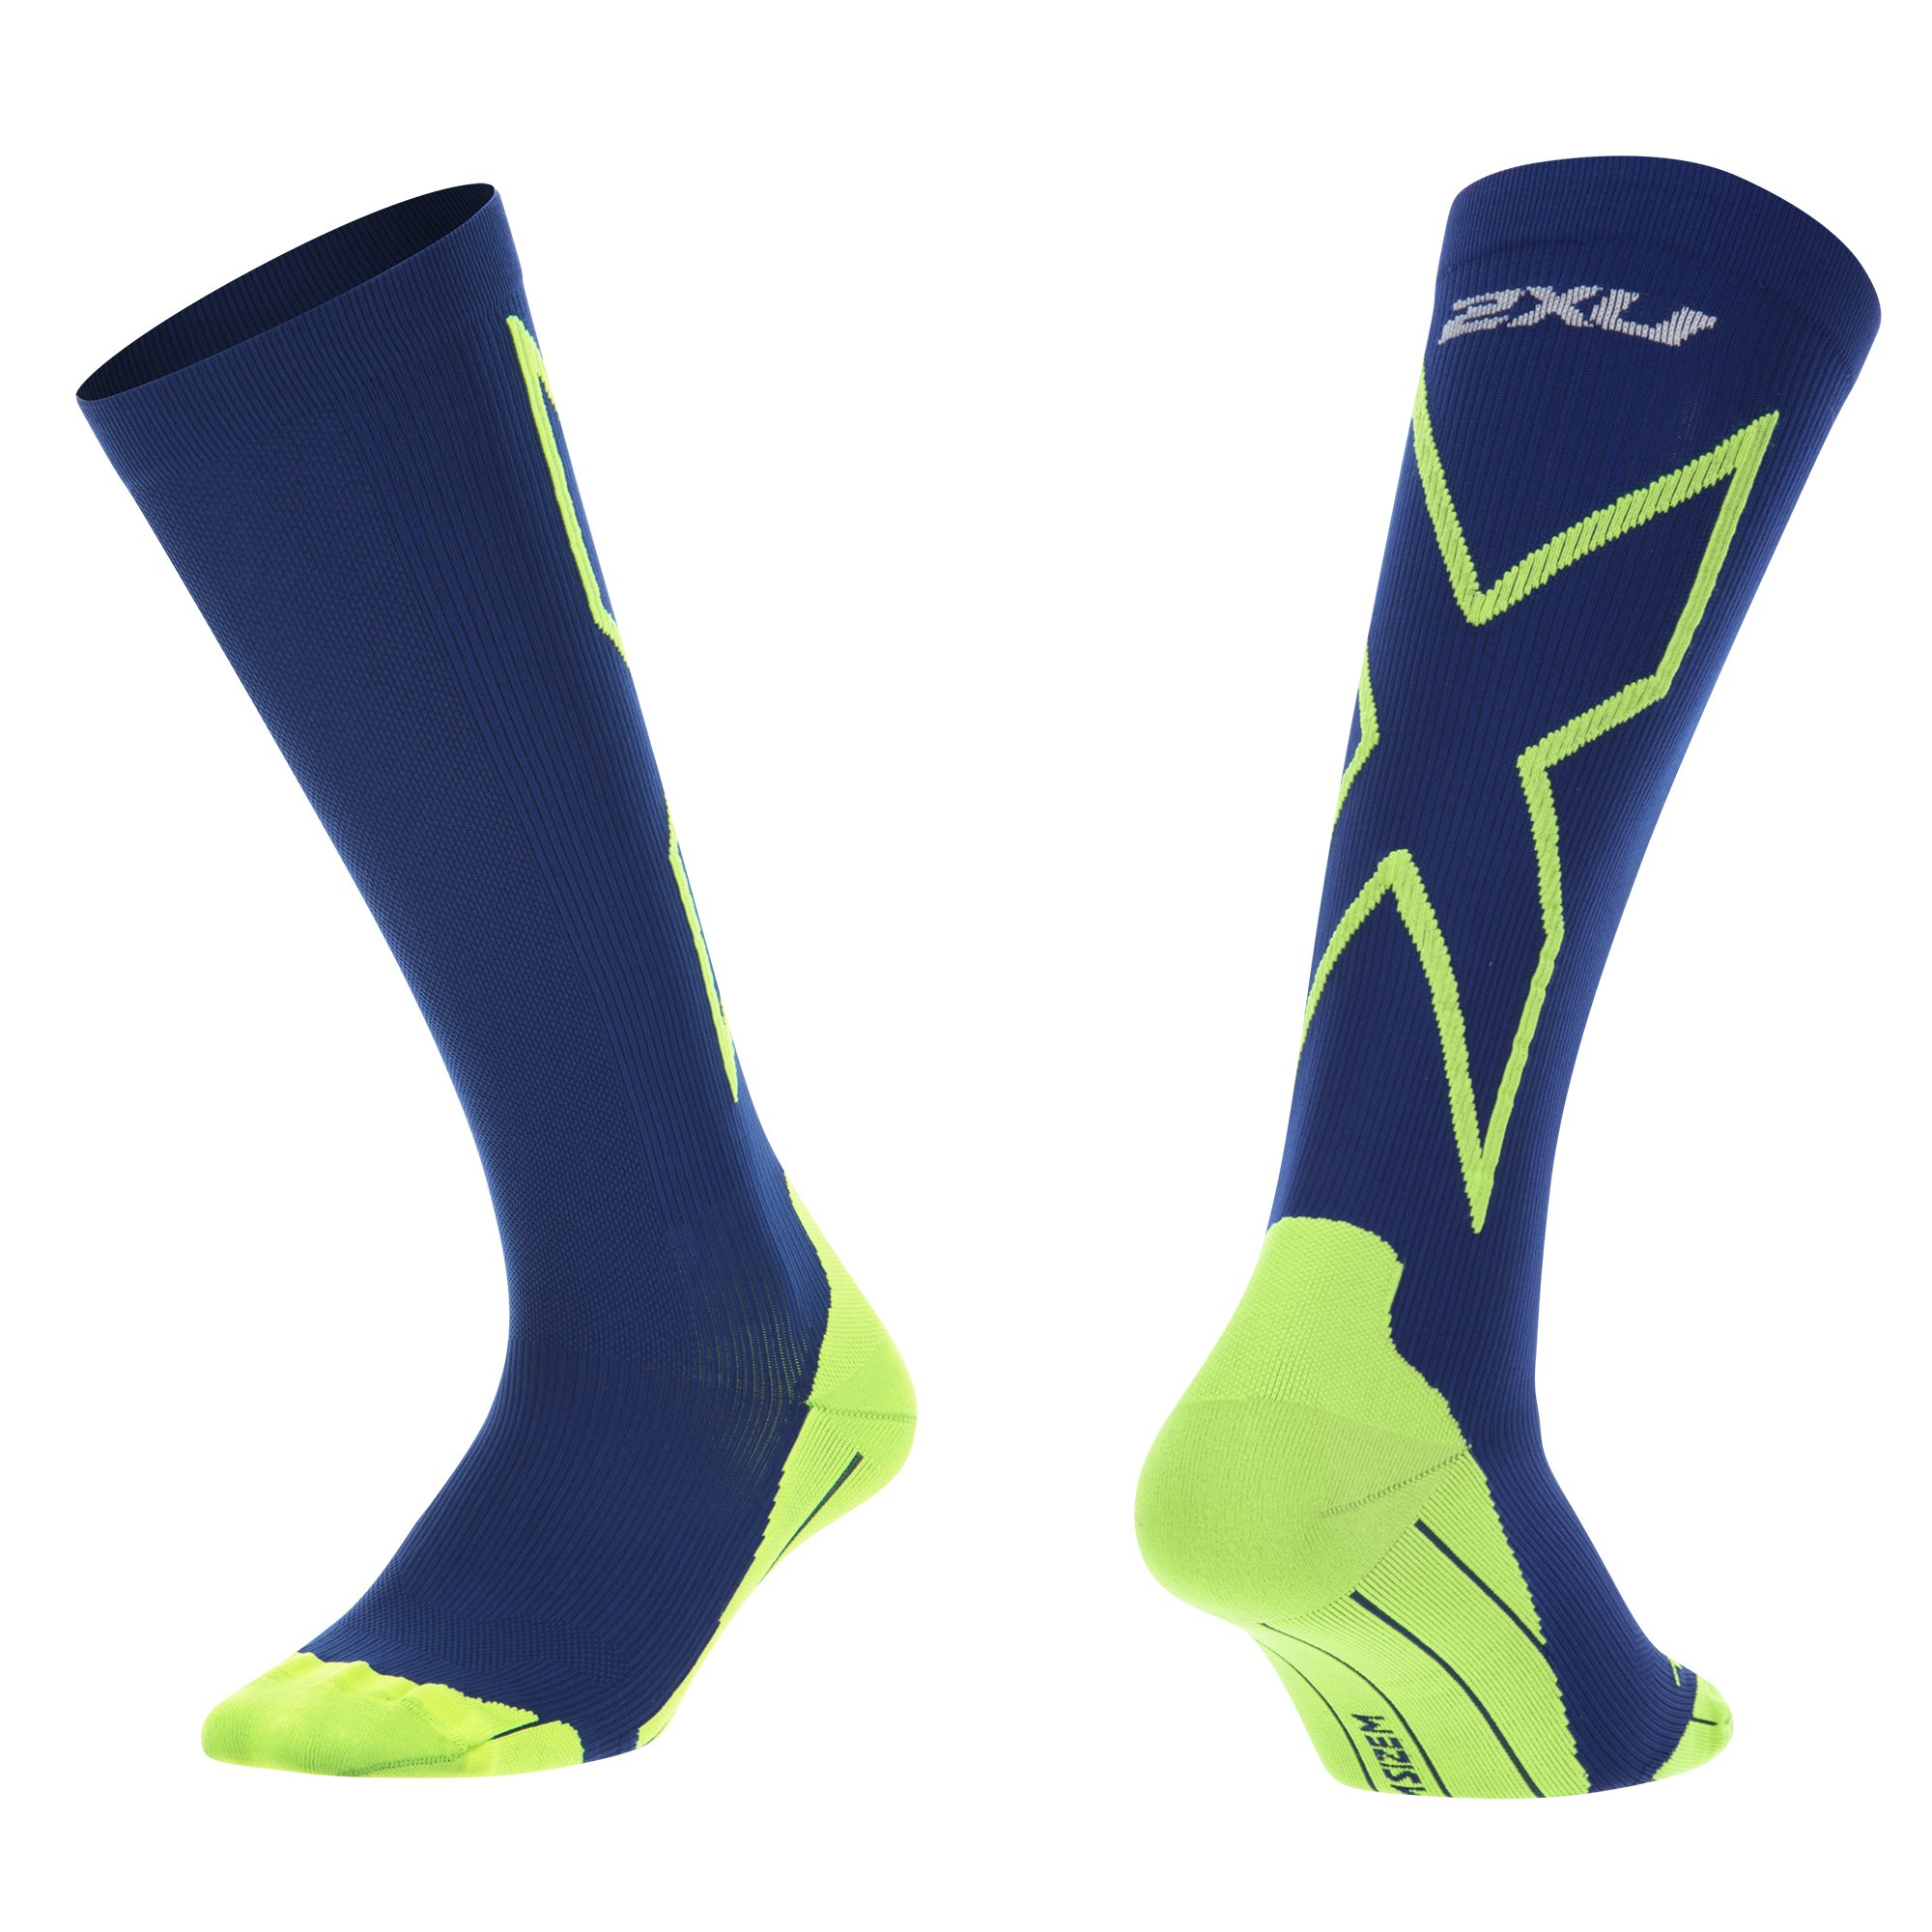 2XU Men's Compression performance X Socks, Navy/Fluoro Green, Small